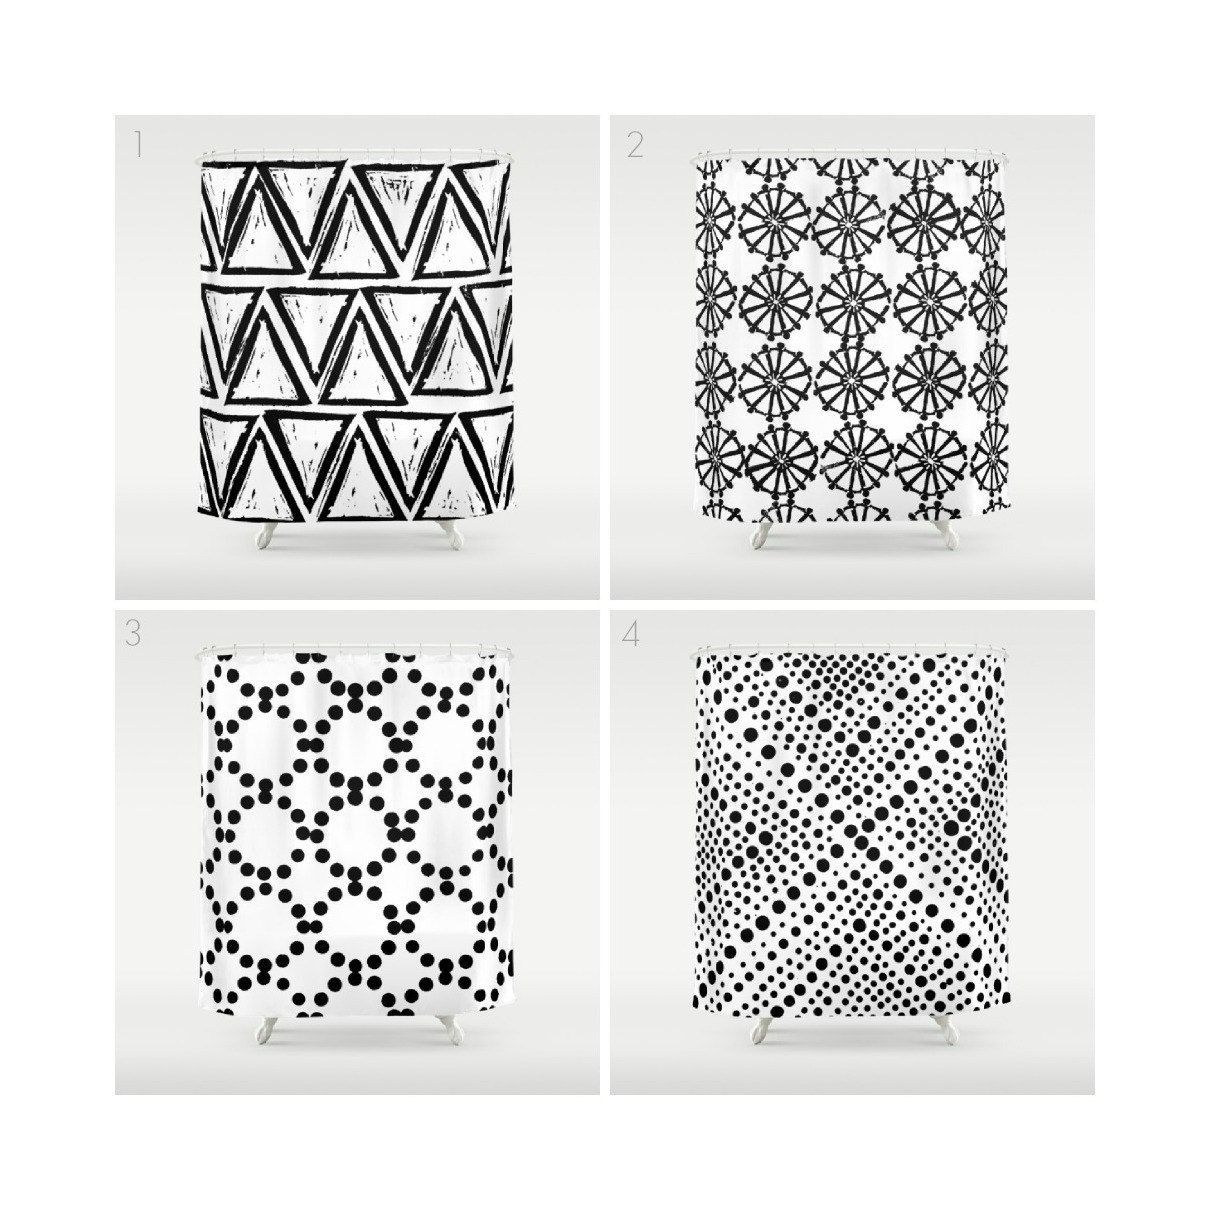 Polka dot shower curtain black and white - Shower Curtain Modern Designer Geometric Prints In White And Black Bold Patterns In Triangle